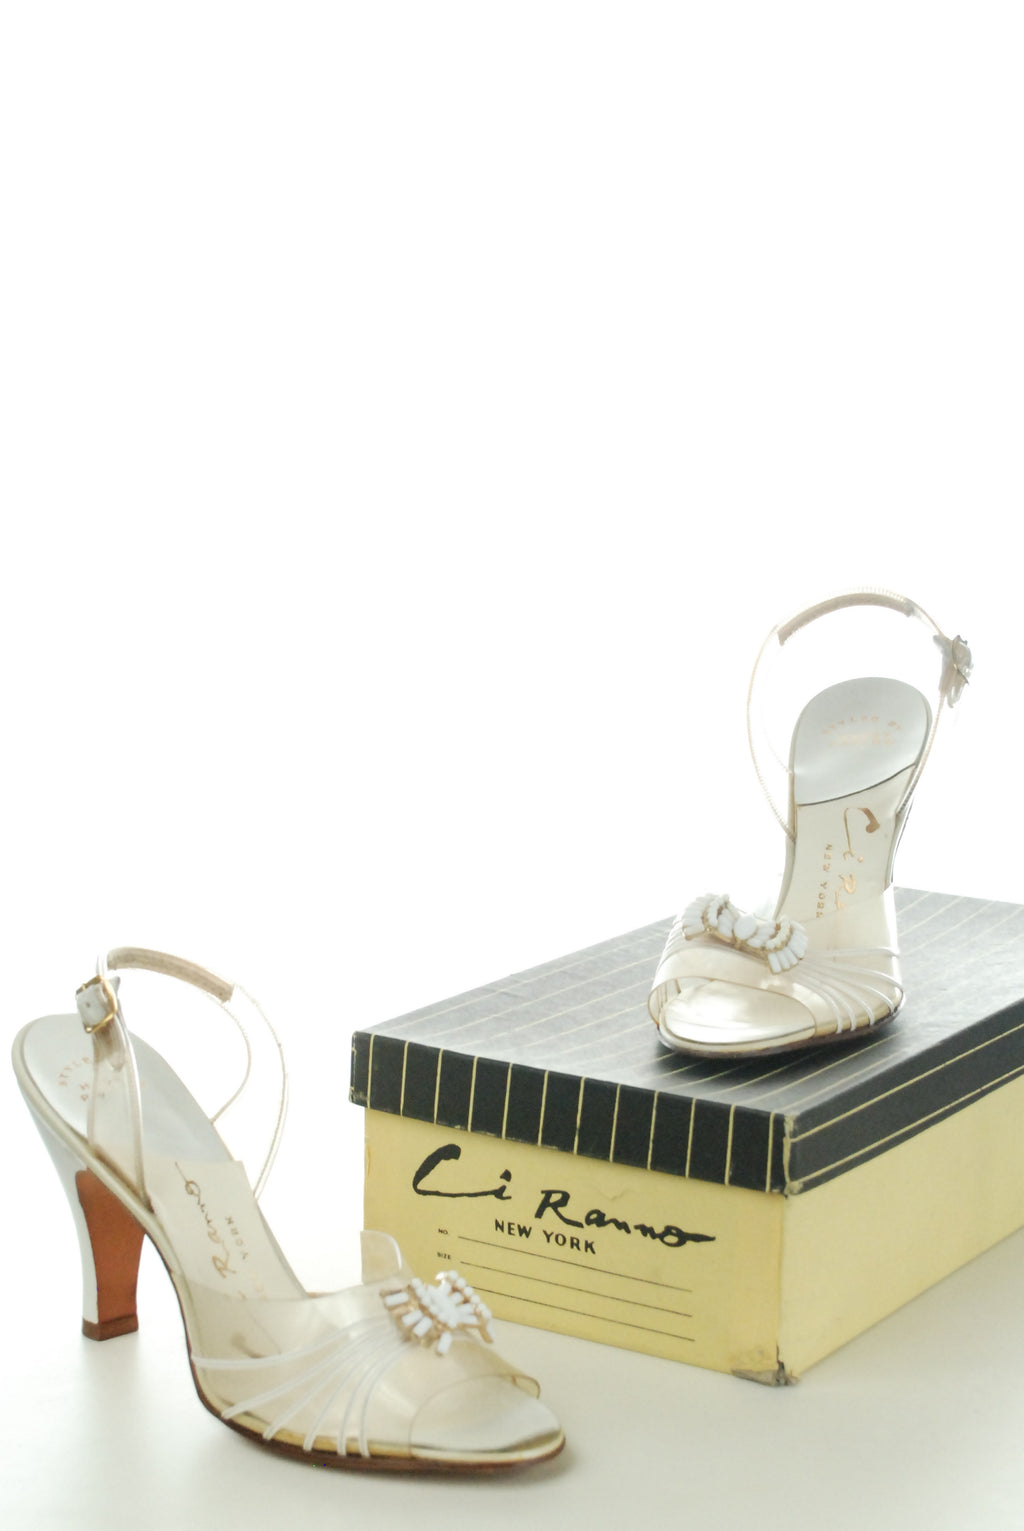 Deadstock 1950s Bombshell Ivory and Clear Plexi Heels Size 7 1/2 with Box